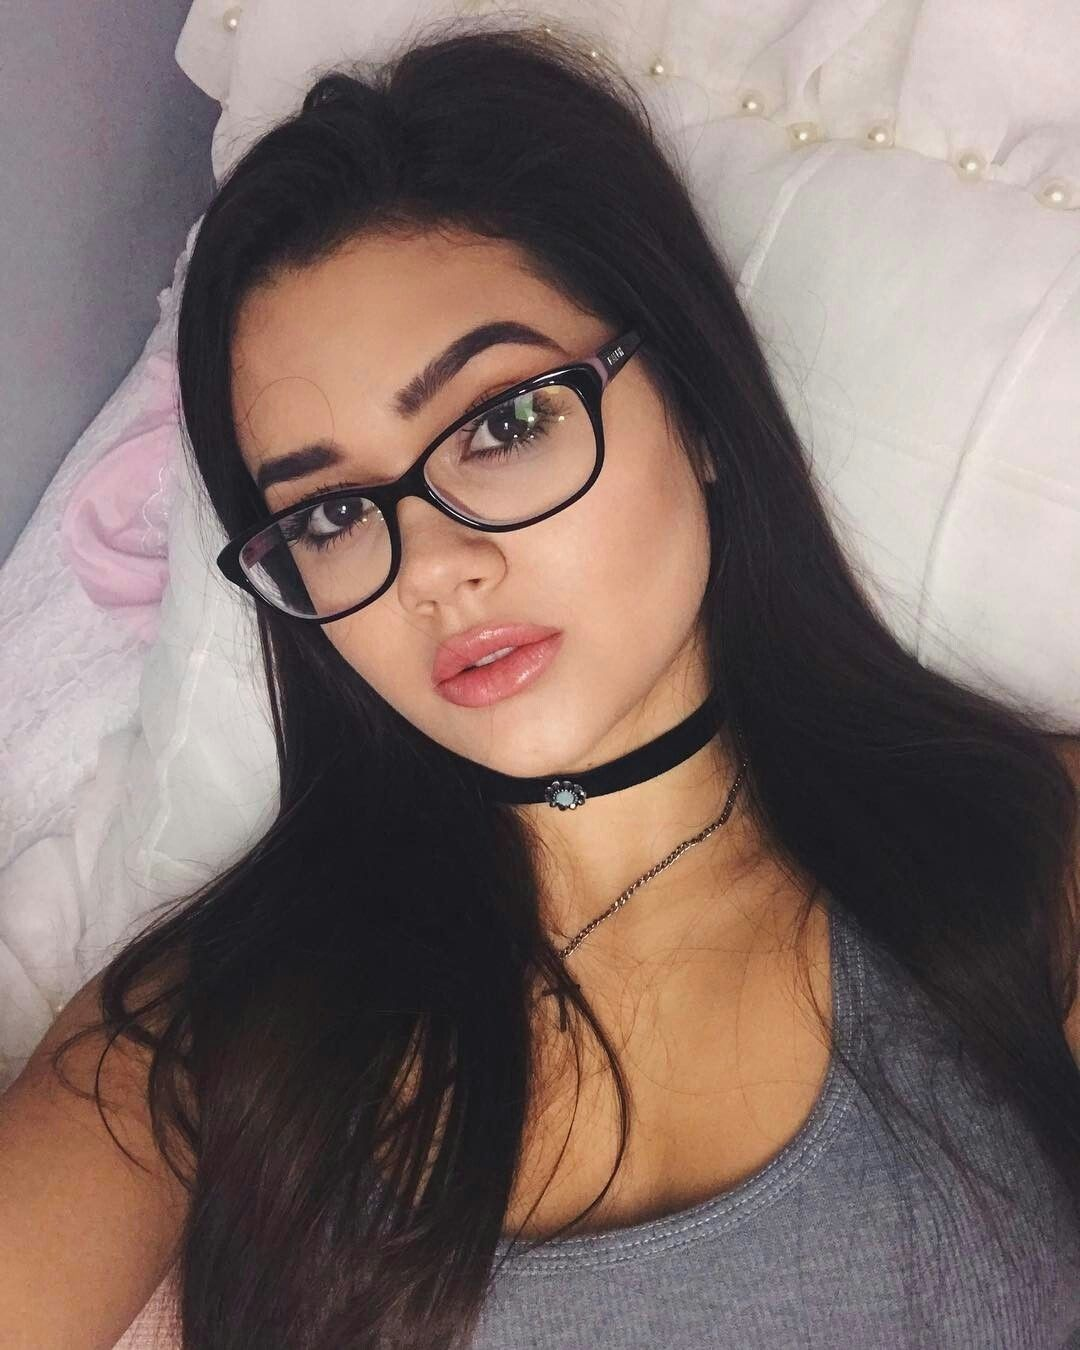 Pretty girls with glasses